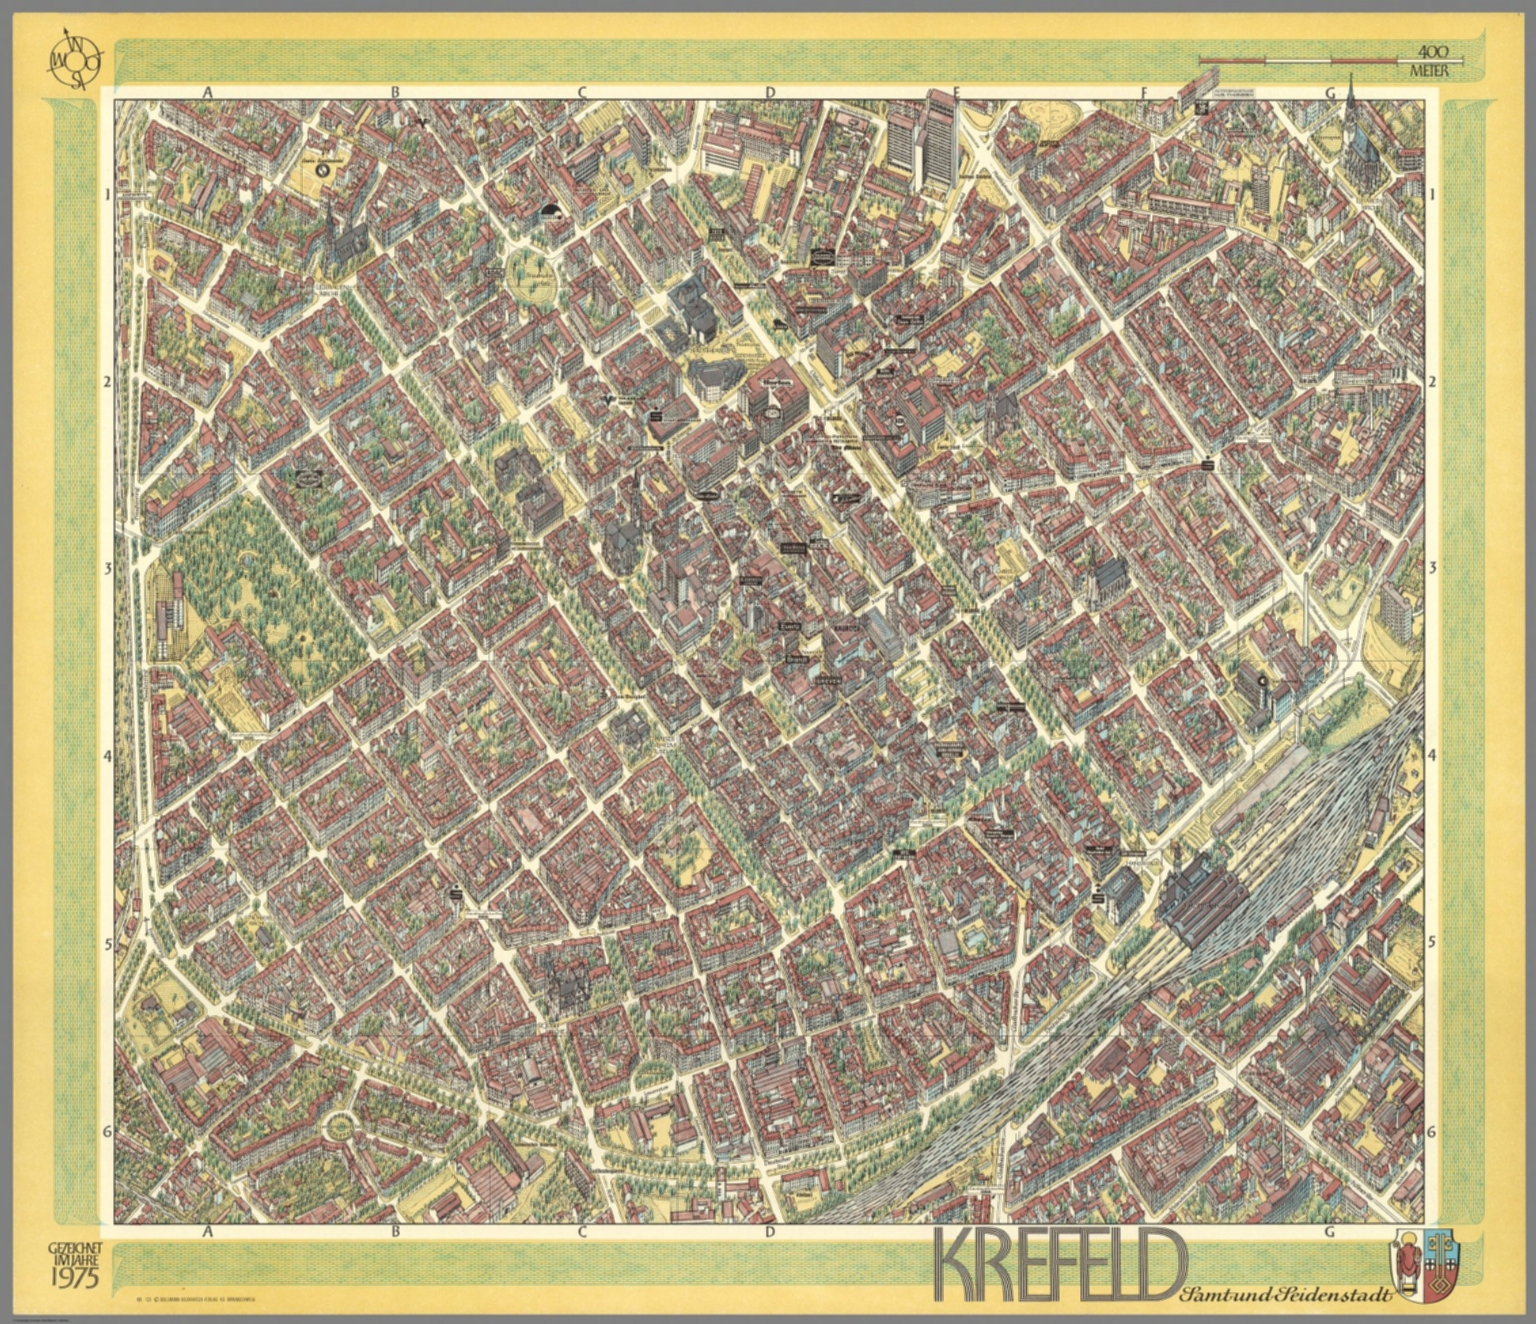 Krefeld Germany David Rumsey Historical Map Collection